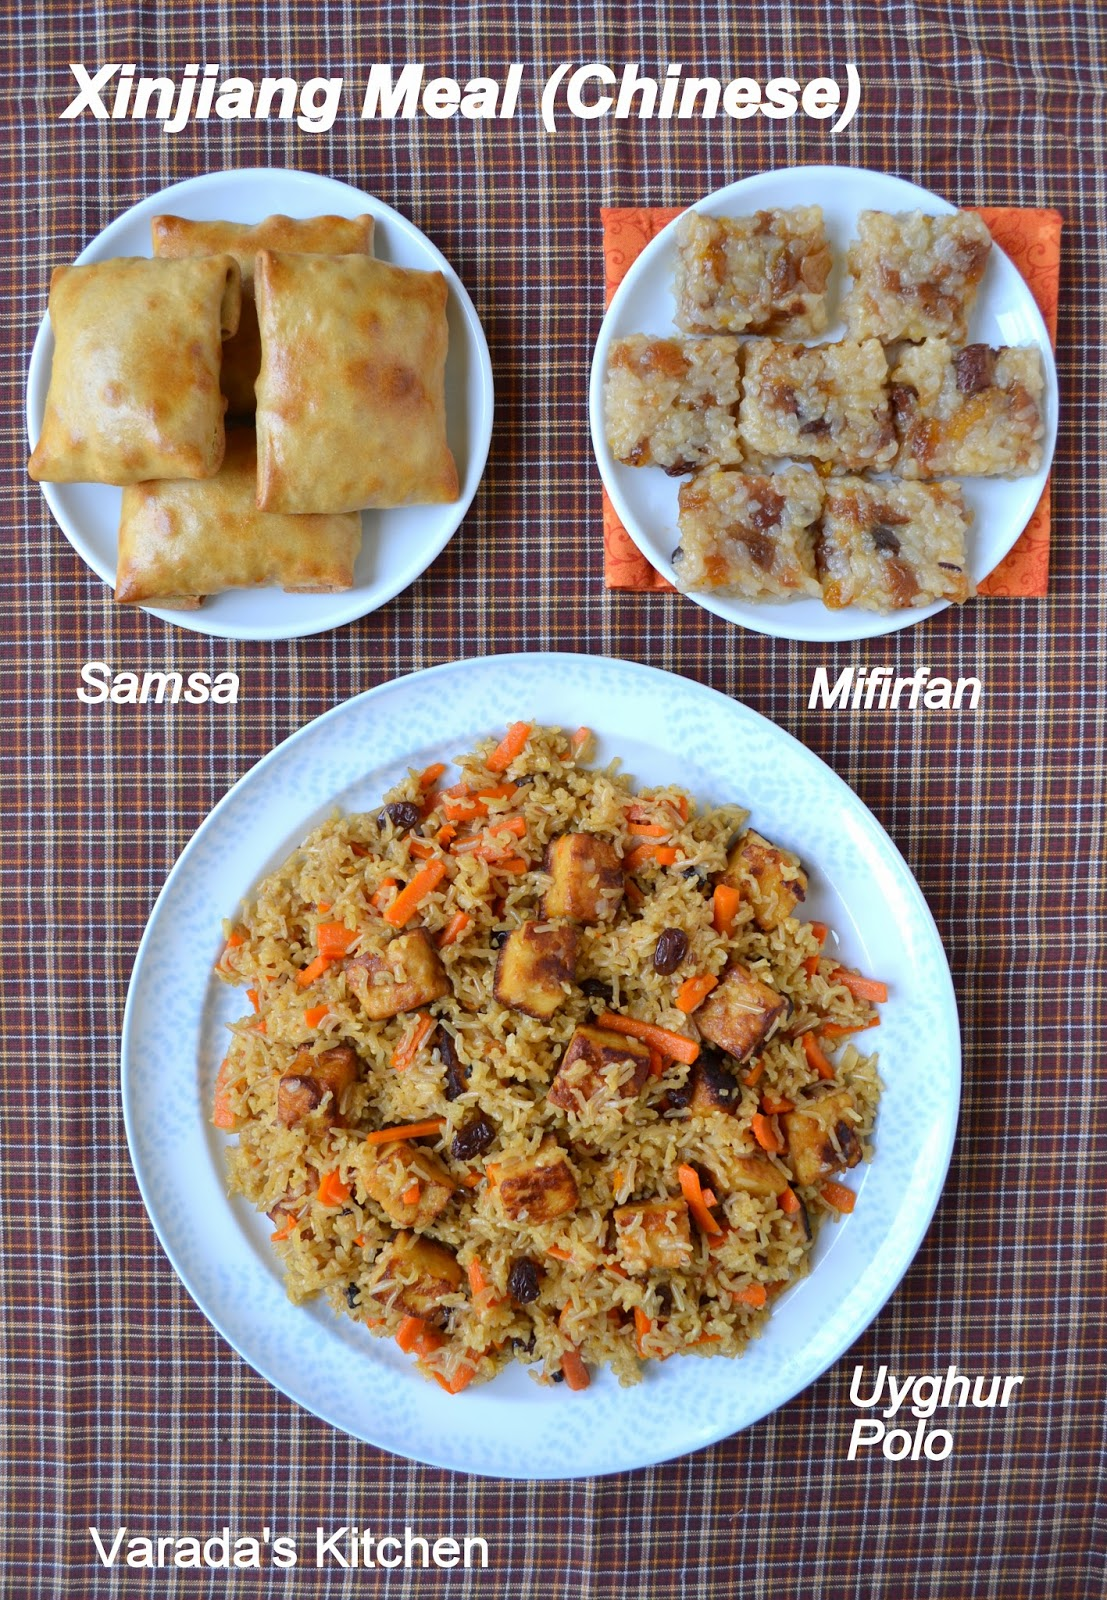 Varadas kitchen xinjiang chinese meal for dessert i made a sweet rice called mifirfan fan is rice in the local language in this dish the rice is sweetened with apricots and raisins along forumfinder Choice Image